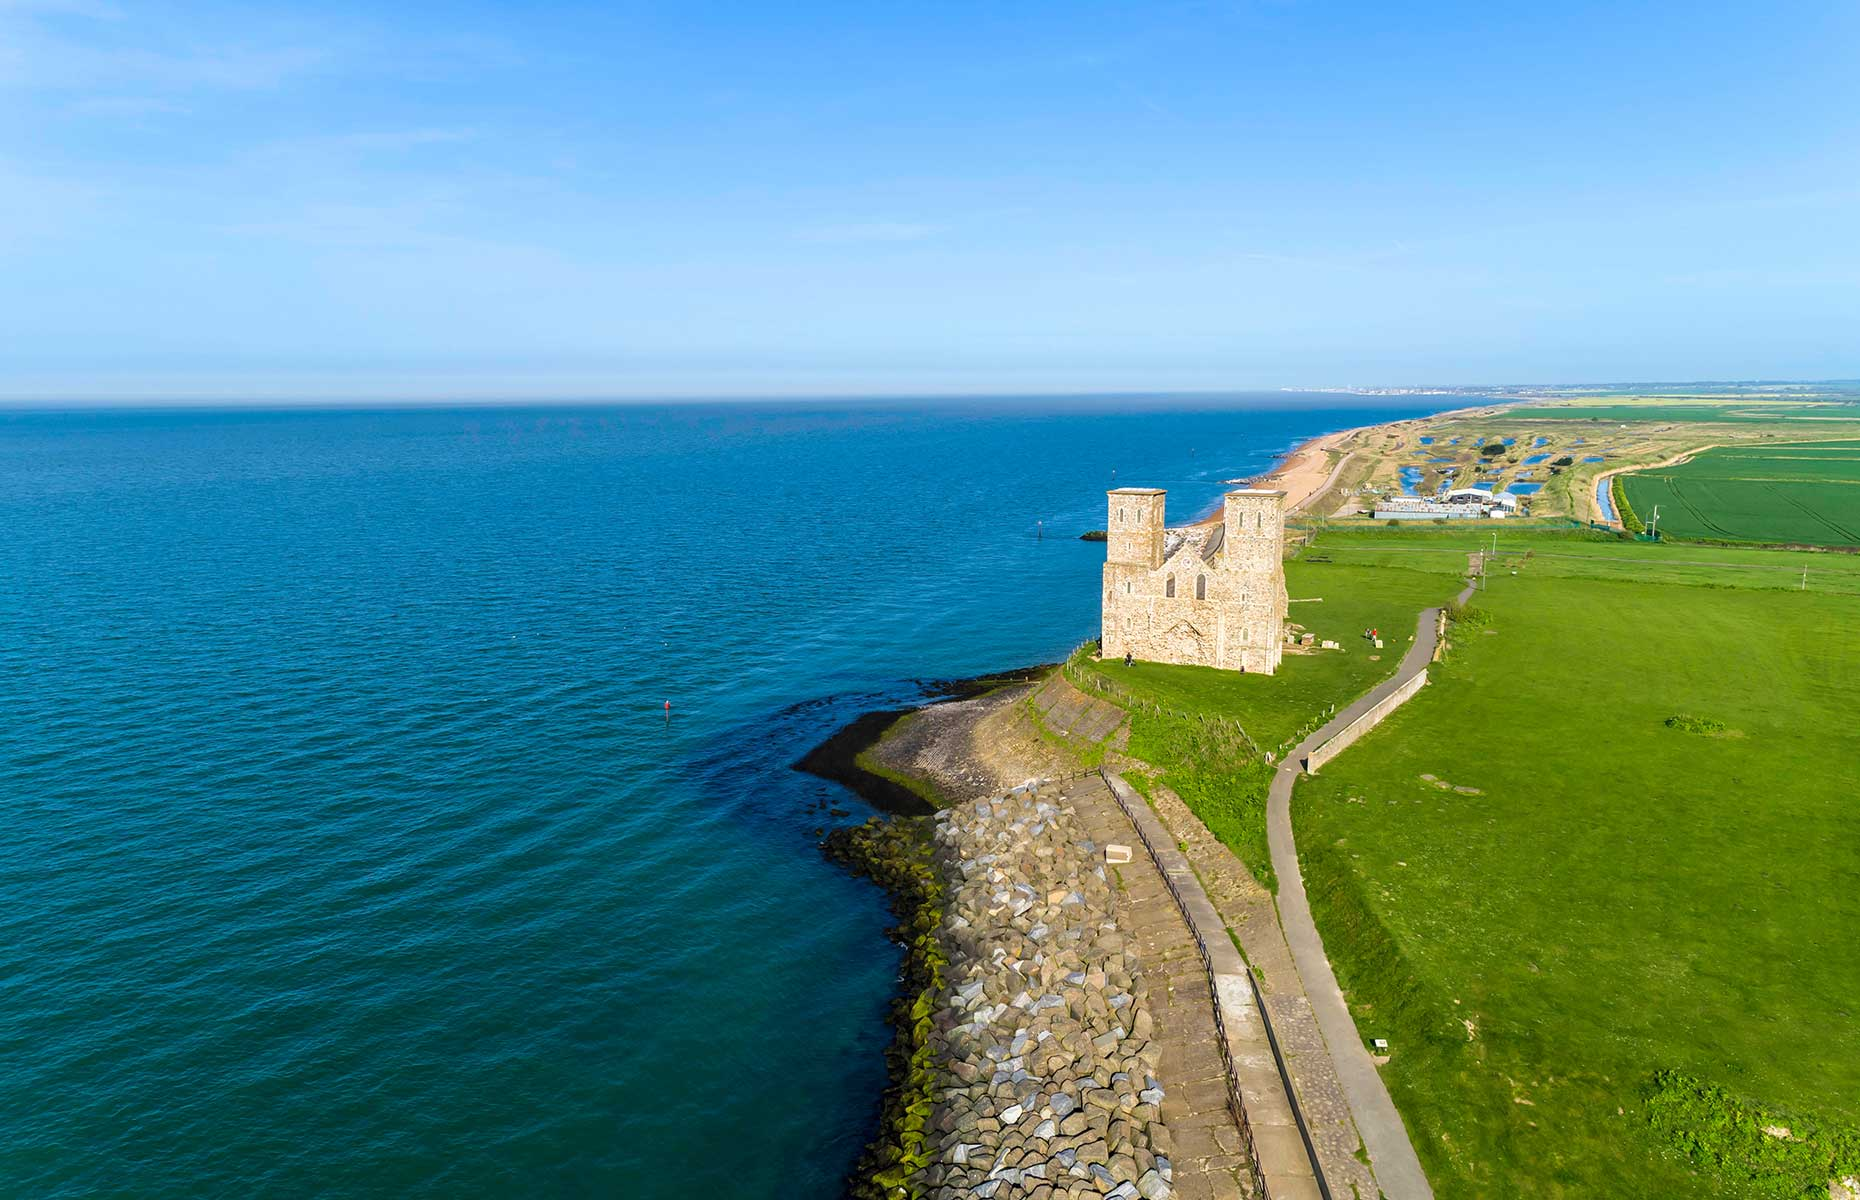 Reculver Towers (Image: sparksy34/Shutterstock)